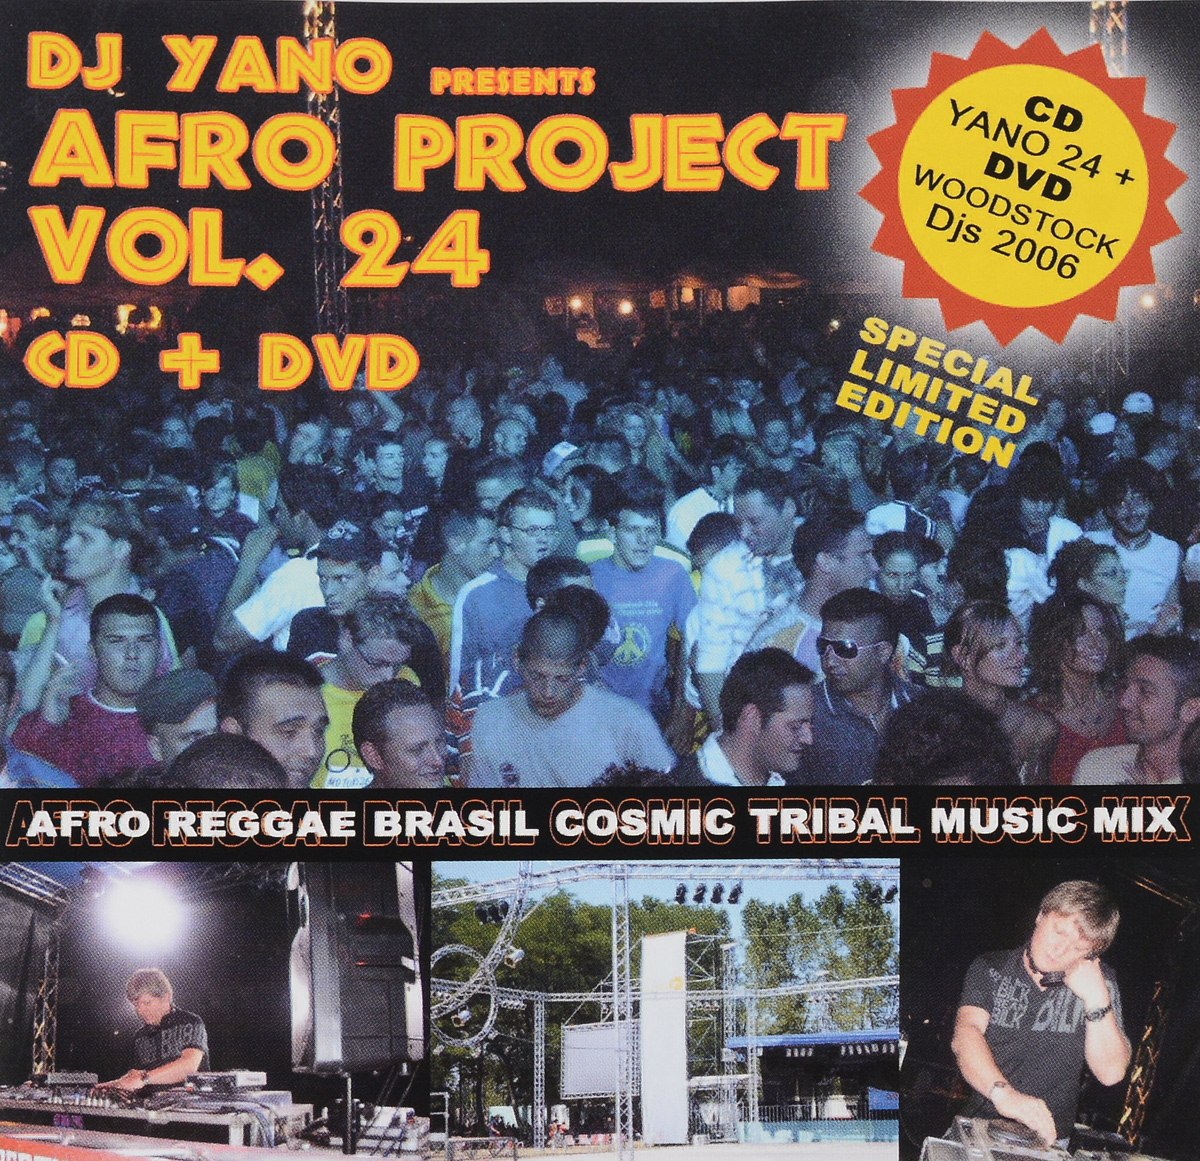 Dj Yano Dj Yano. Afro Project. Vol. 24. Special Limited Edition (CD + DVD) rod serling twilight zone radio dramas vol 1 10 cd set